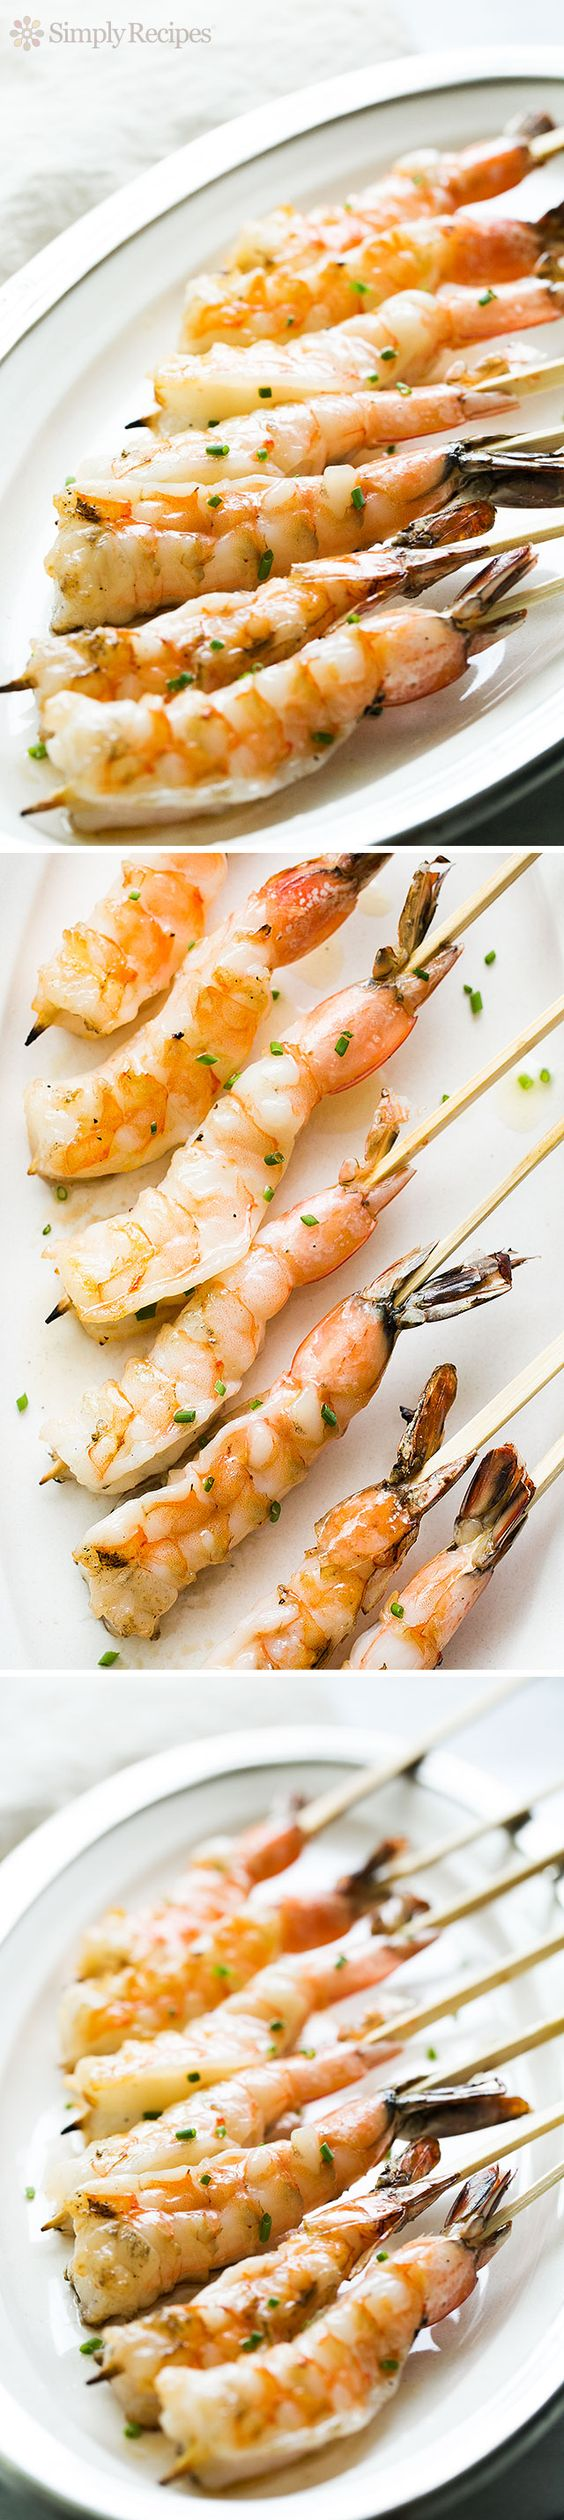 Grilled Garlic Shrimp Skewers ~ Perfect for a #FourthOfJuly cookout! Easy grilled shrimp basted with garlic butter. It's shrimp on a stick! ~ SimplyRecipes.com